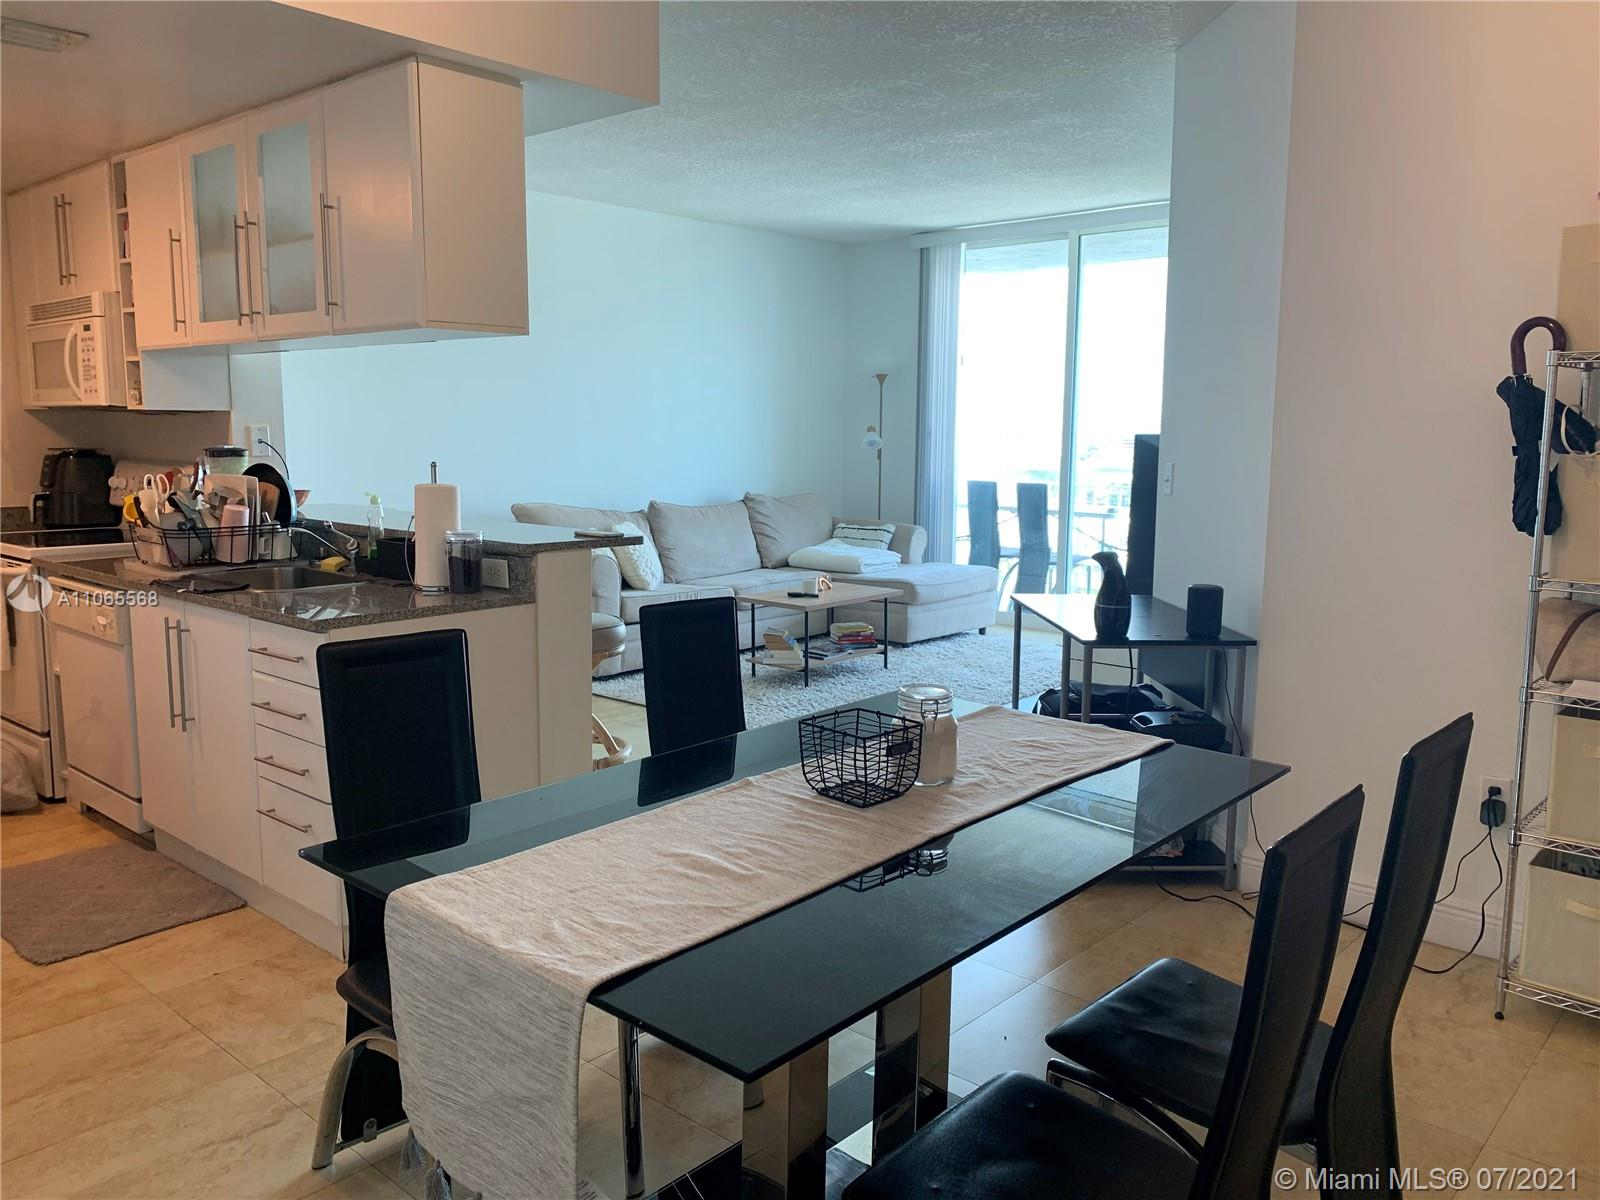 Beautiful 1 BED 1 BATH in a great central location. Tile floors all throughout and open city and water views. Rented to a great tenant till April 2022 ($1700/monthly).